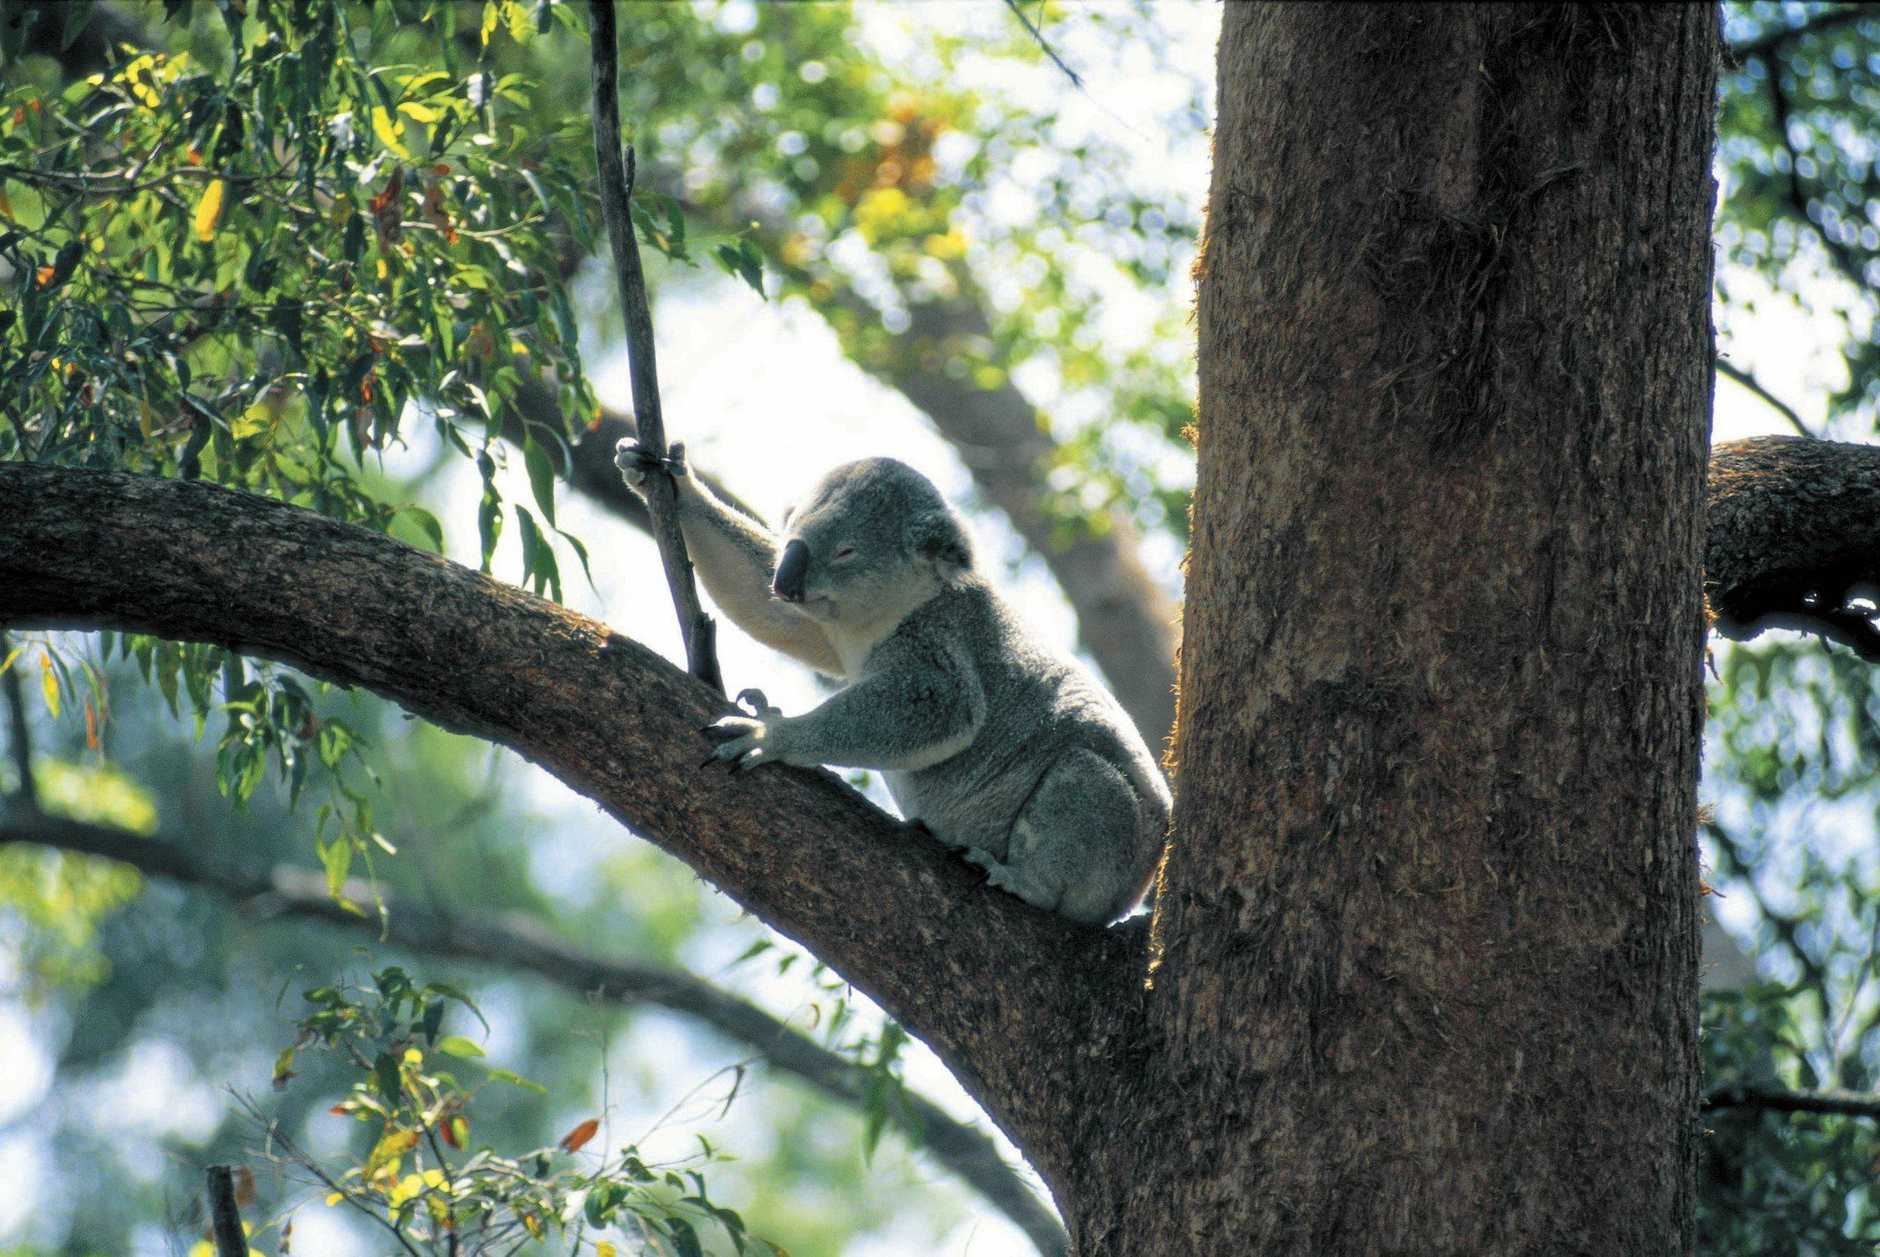 BEAR: The Wilderness Society will hold a koala forum at the Civic Centre next month to raise awareness about declining habitat.